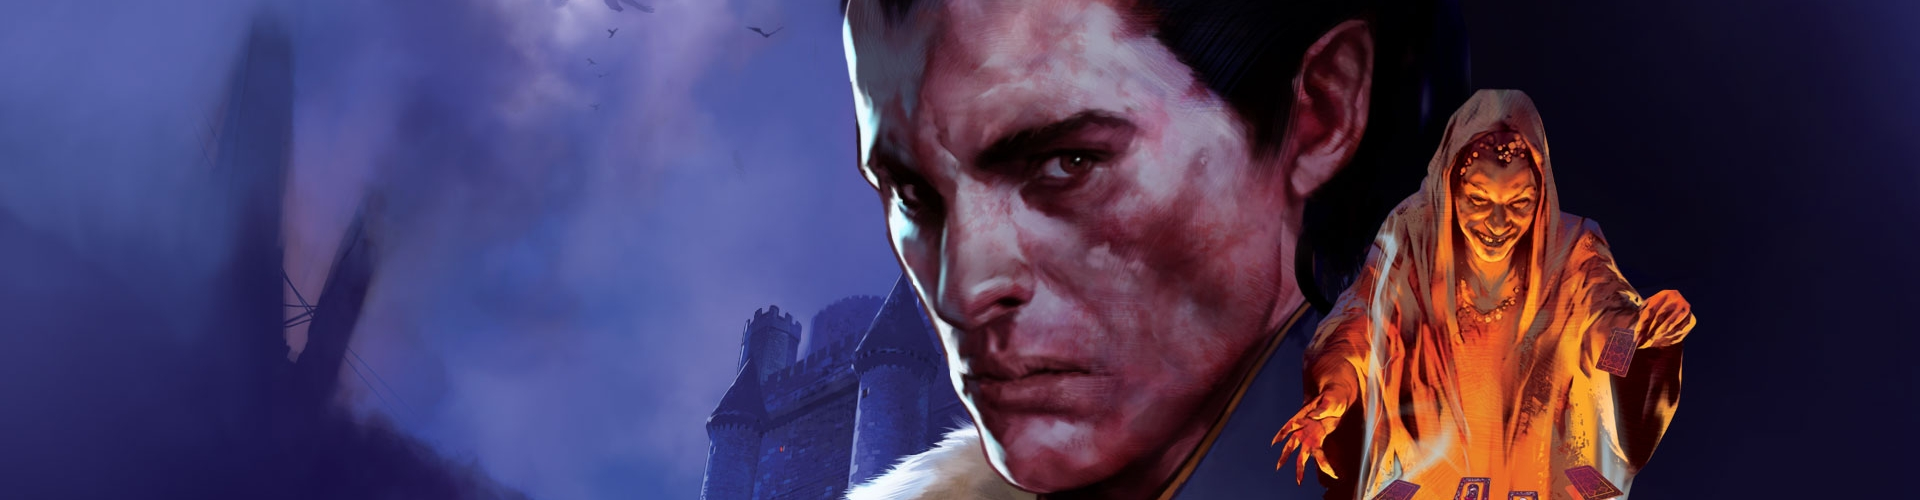 The Art of Dungeons & Dragons and Curse of Strahd